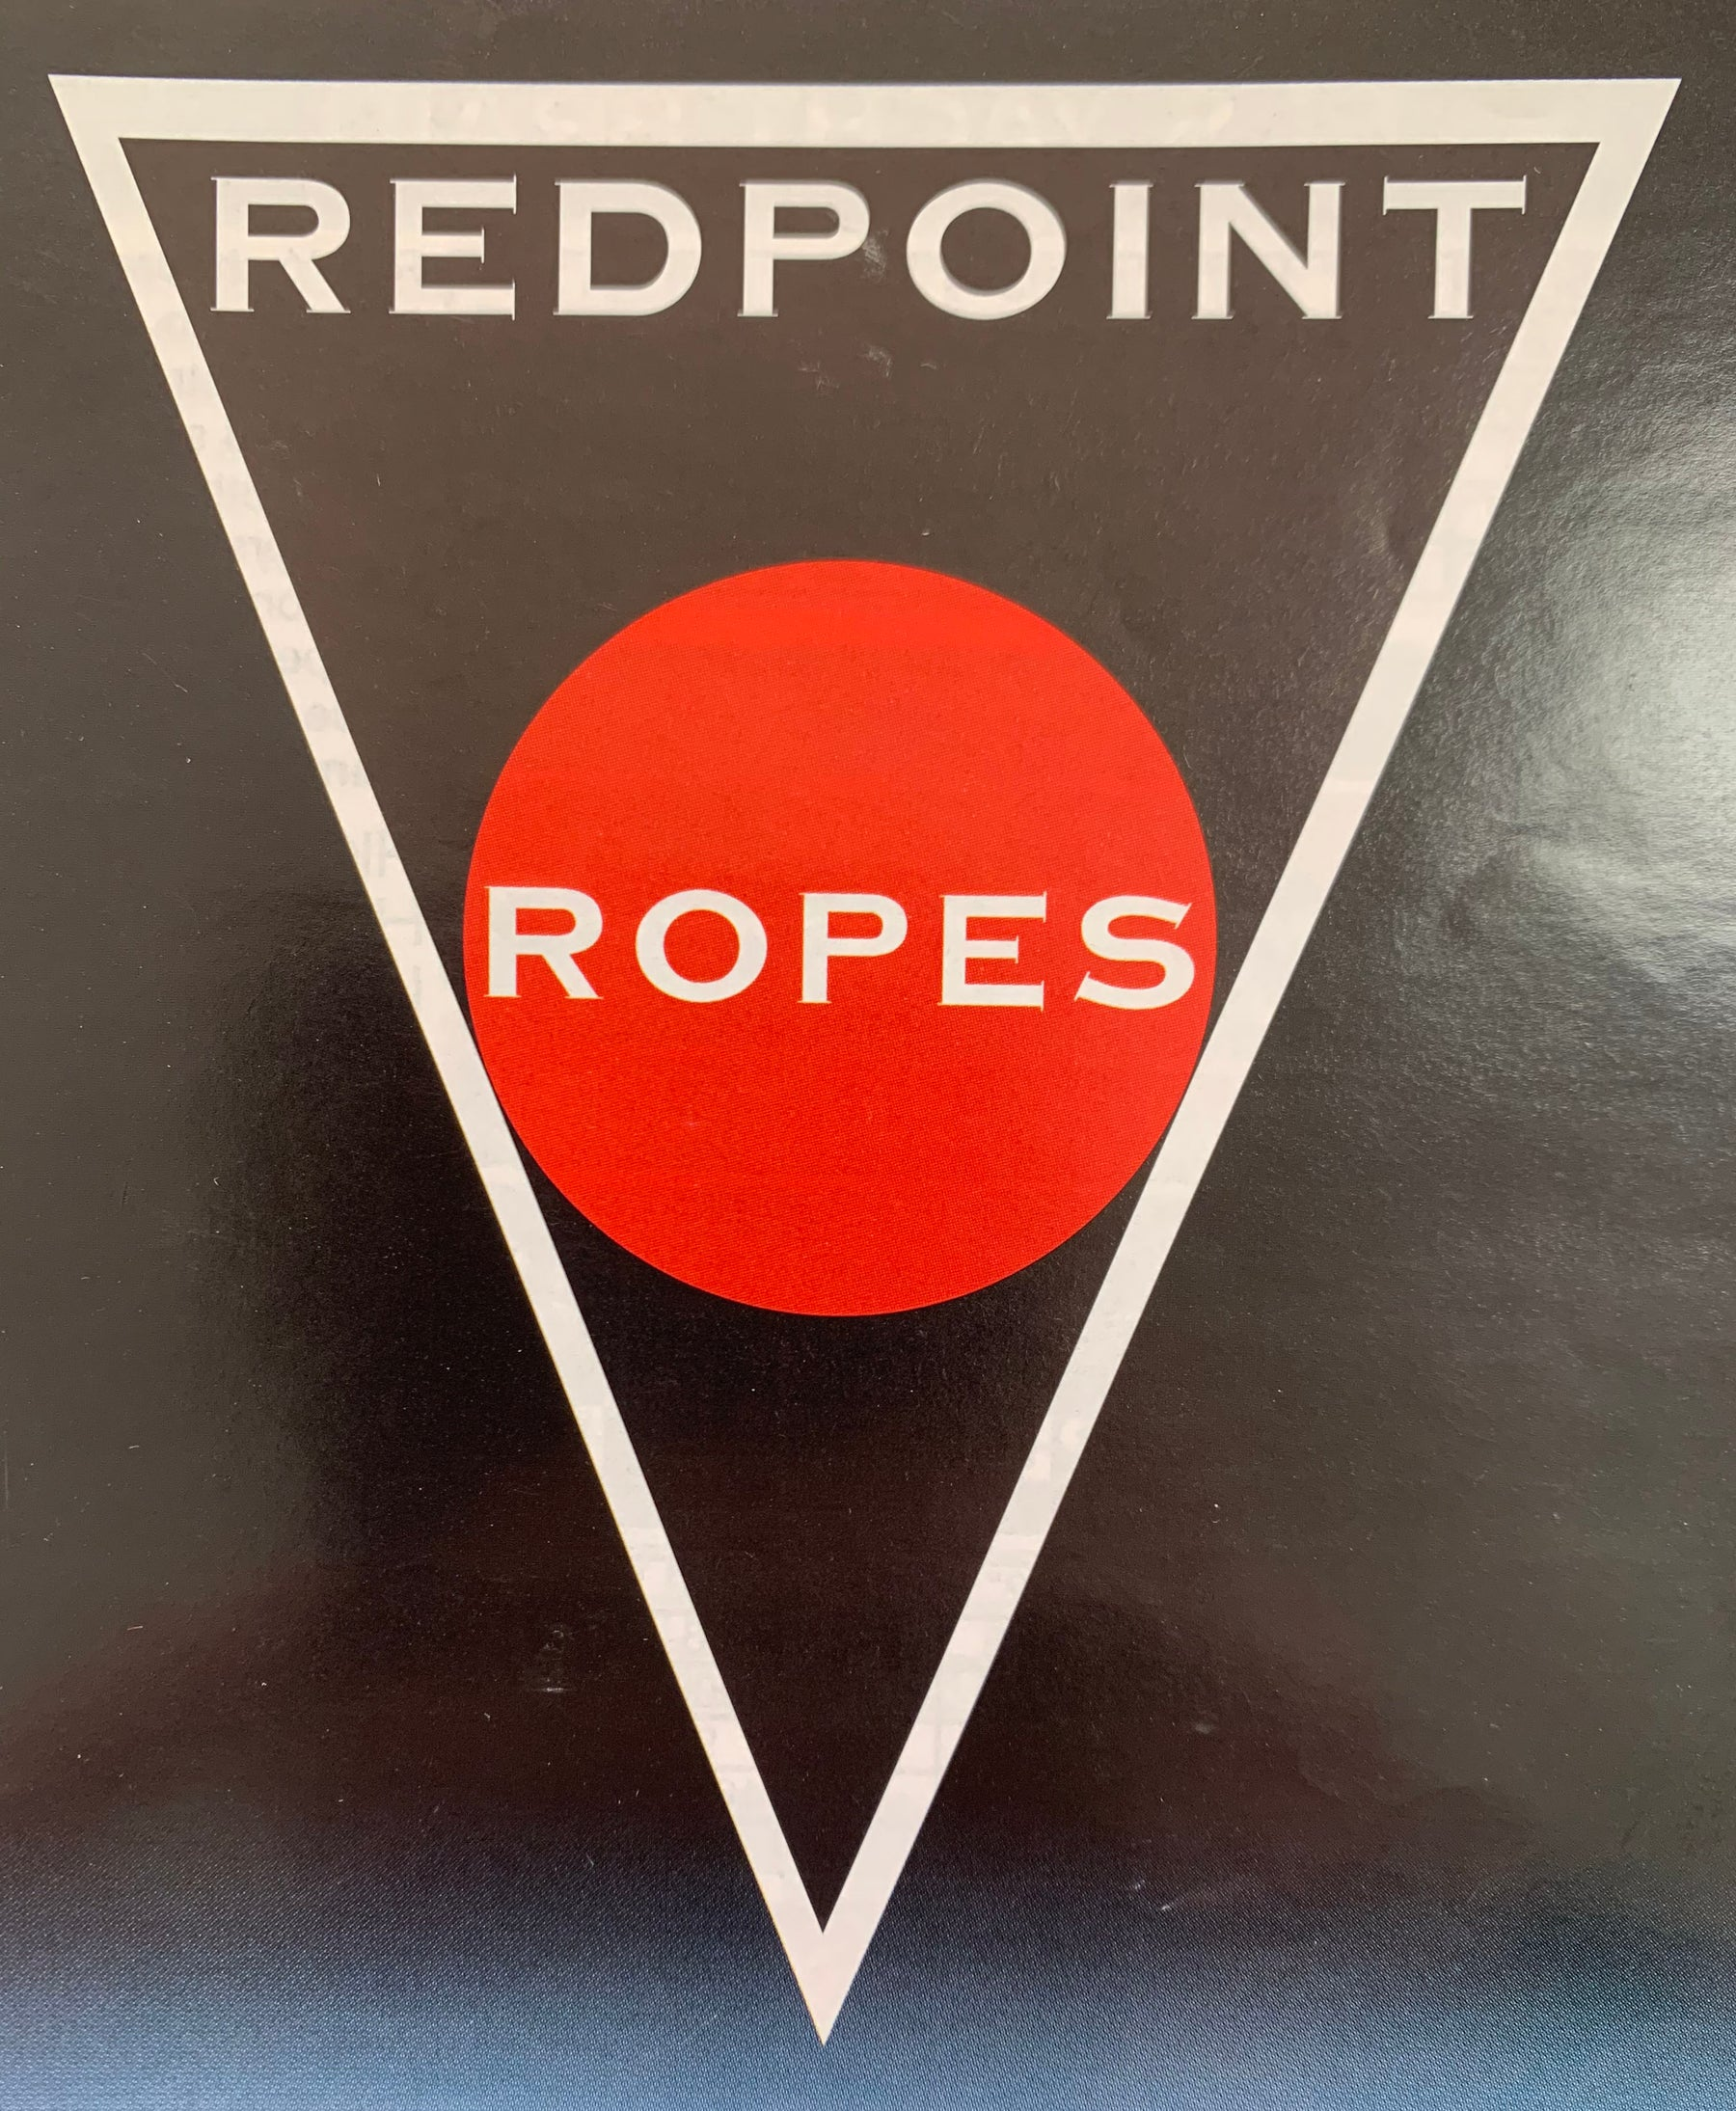 RIGBY acquires Redpoint Ropes Manufacturing